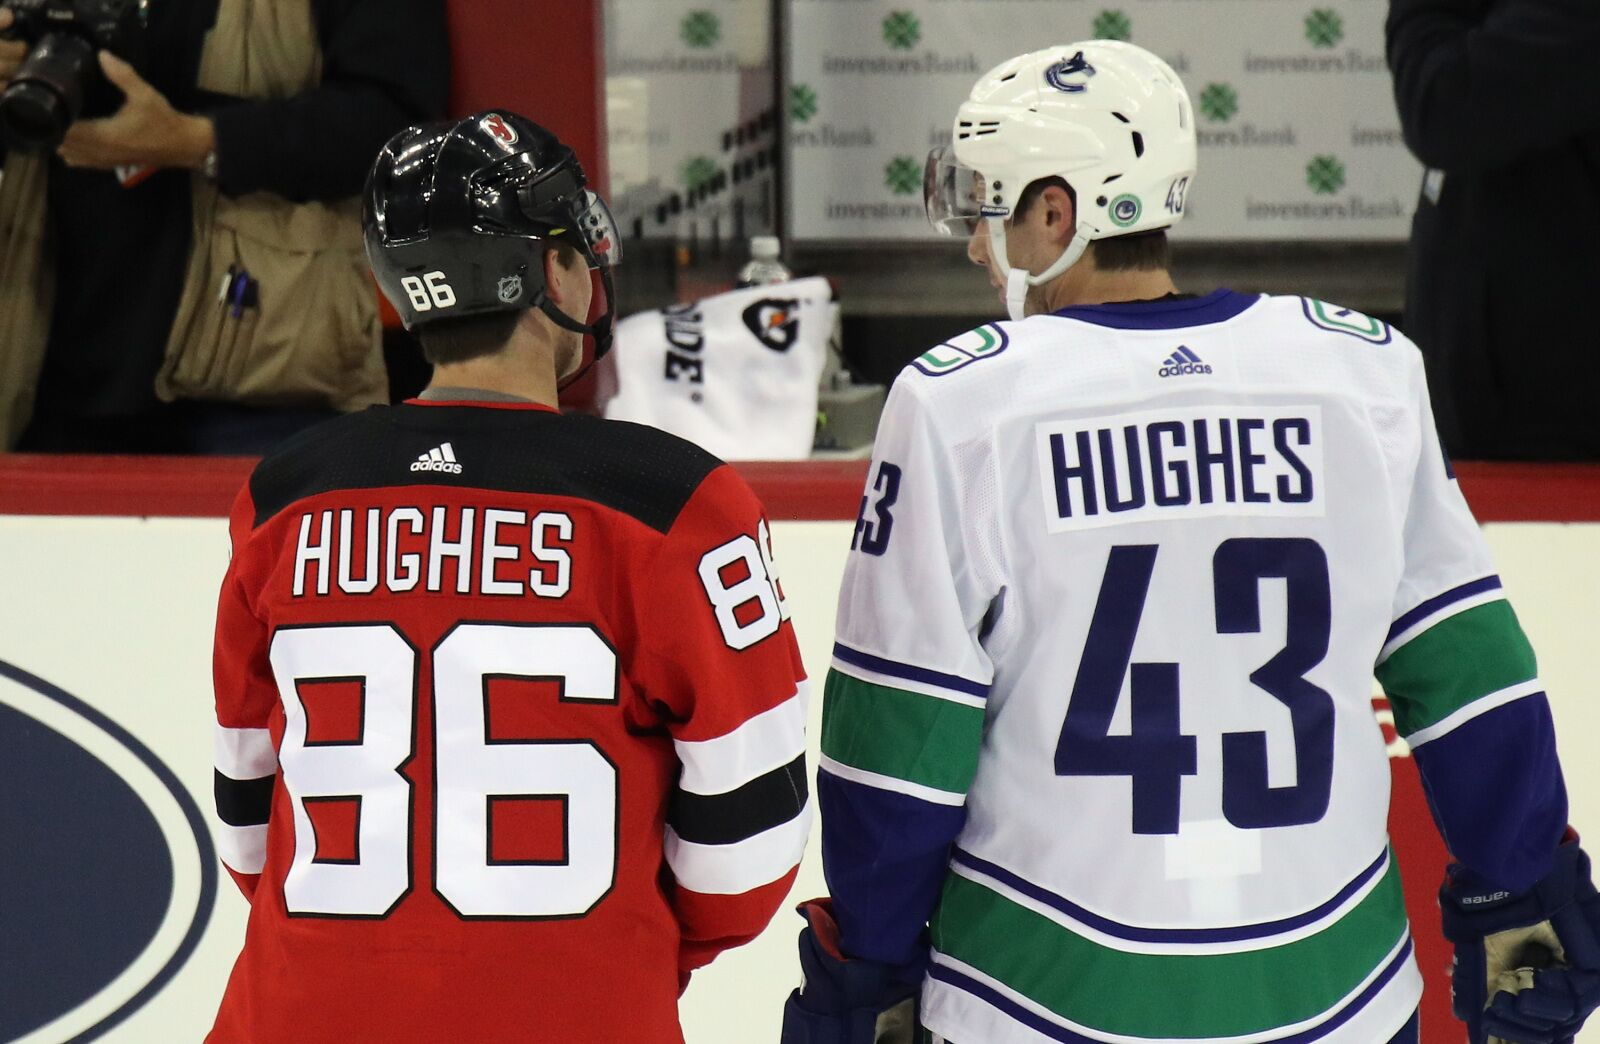 Quadrelli Report: Vancouver Canucks lose, but Hughes gets on PP1